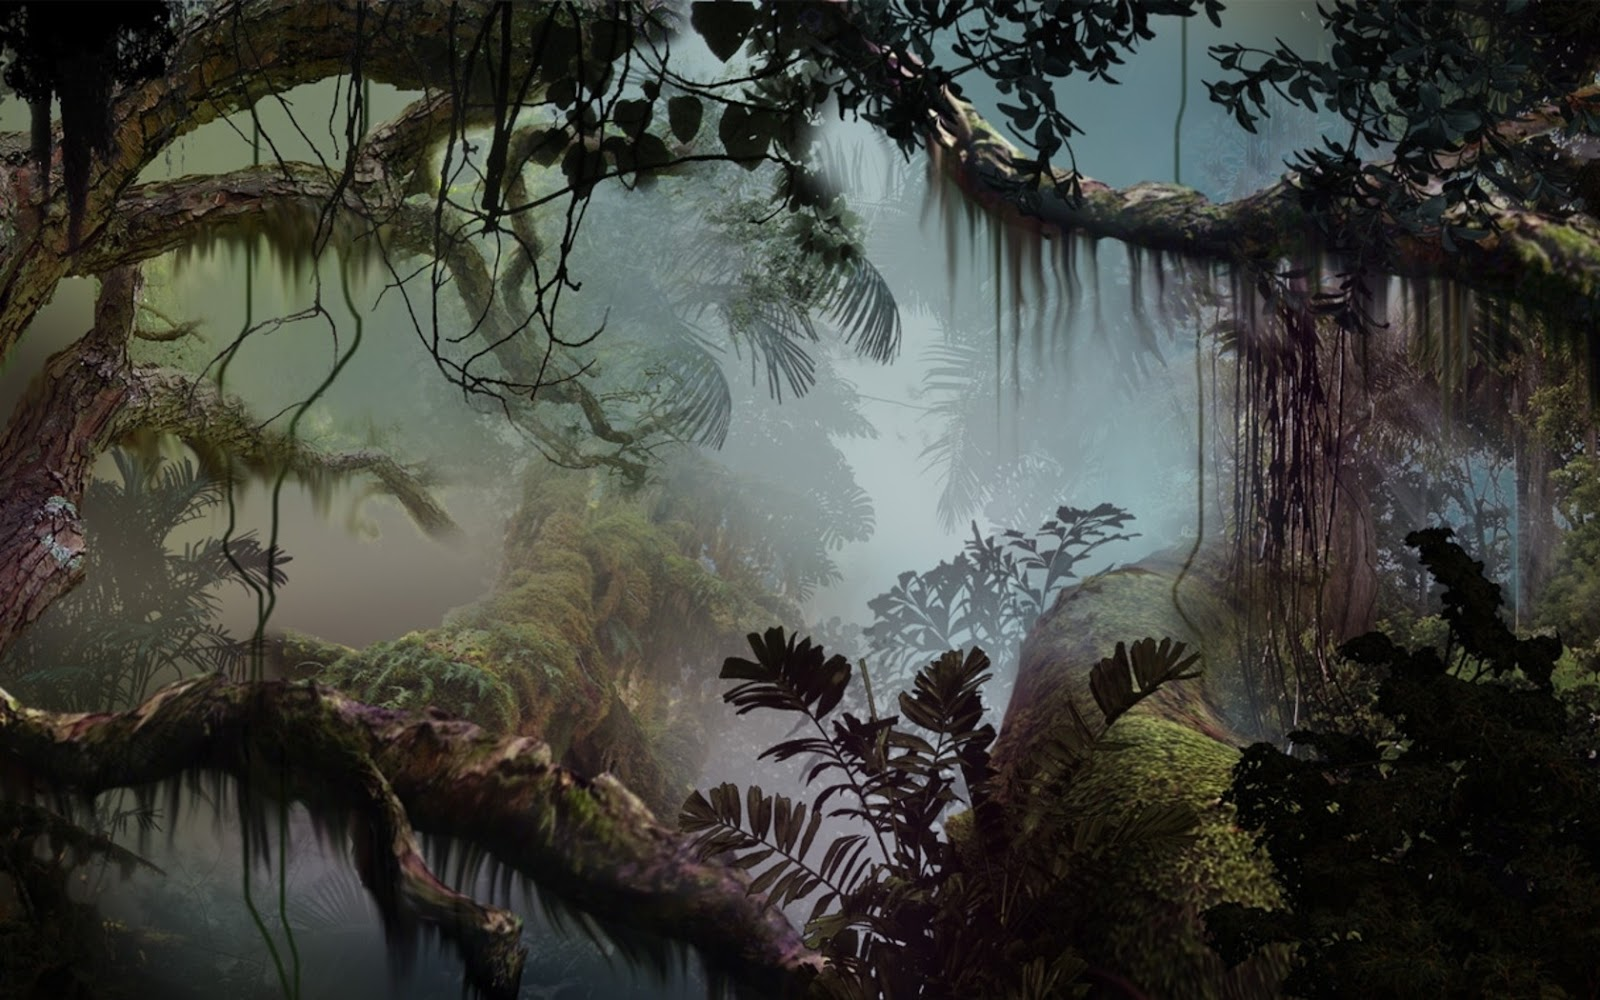 fantasy-jungle-landscapes-the-pics-com-images-fantasy-jungle-art.jpg